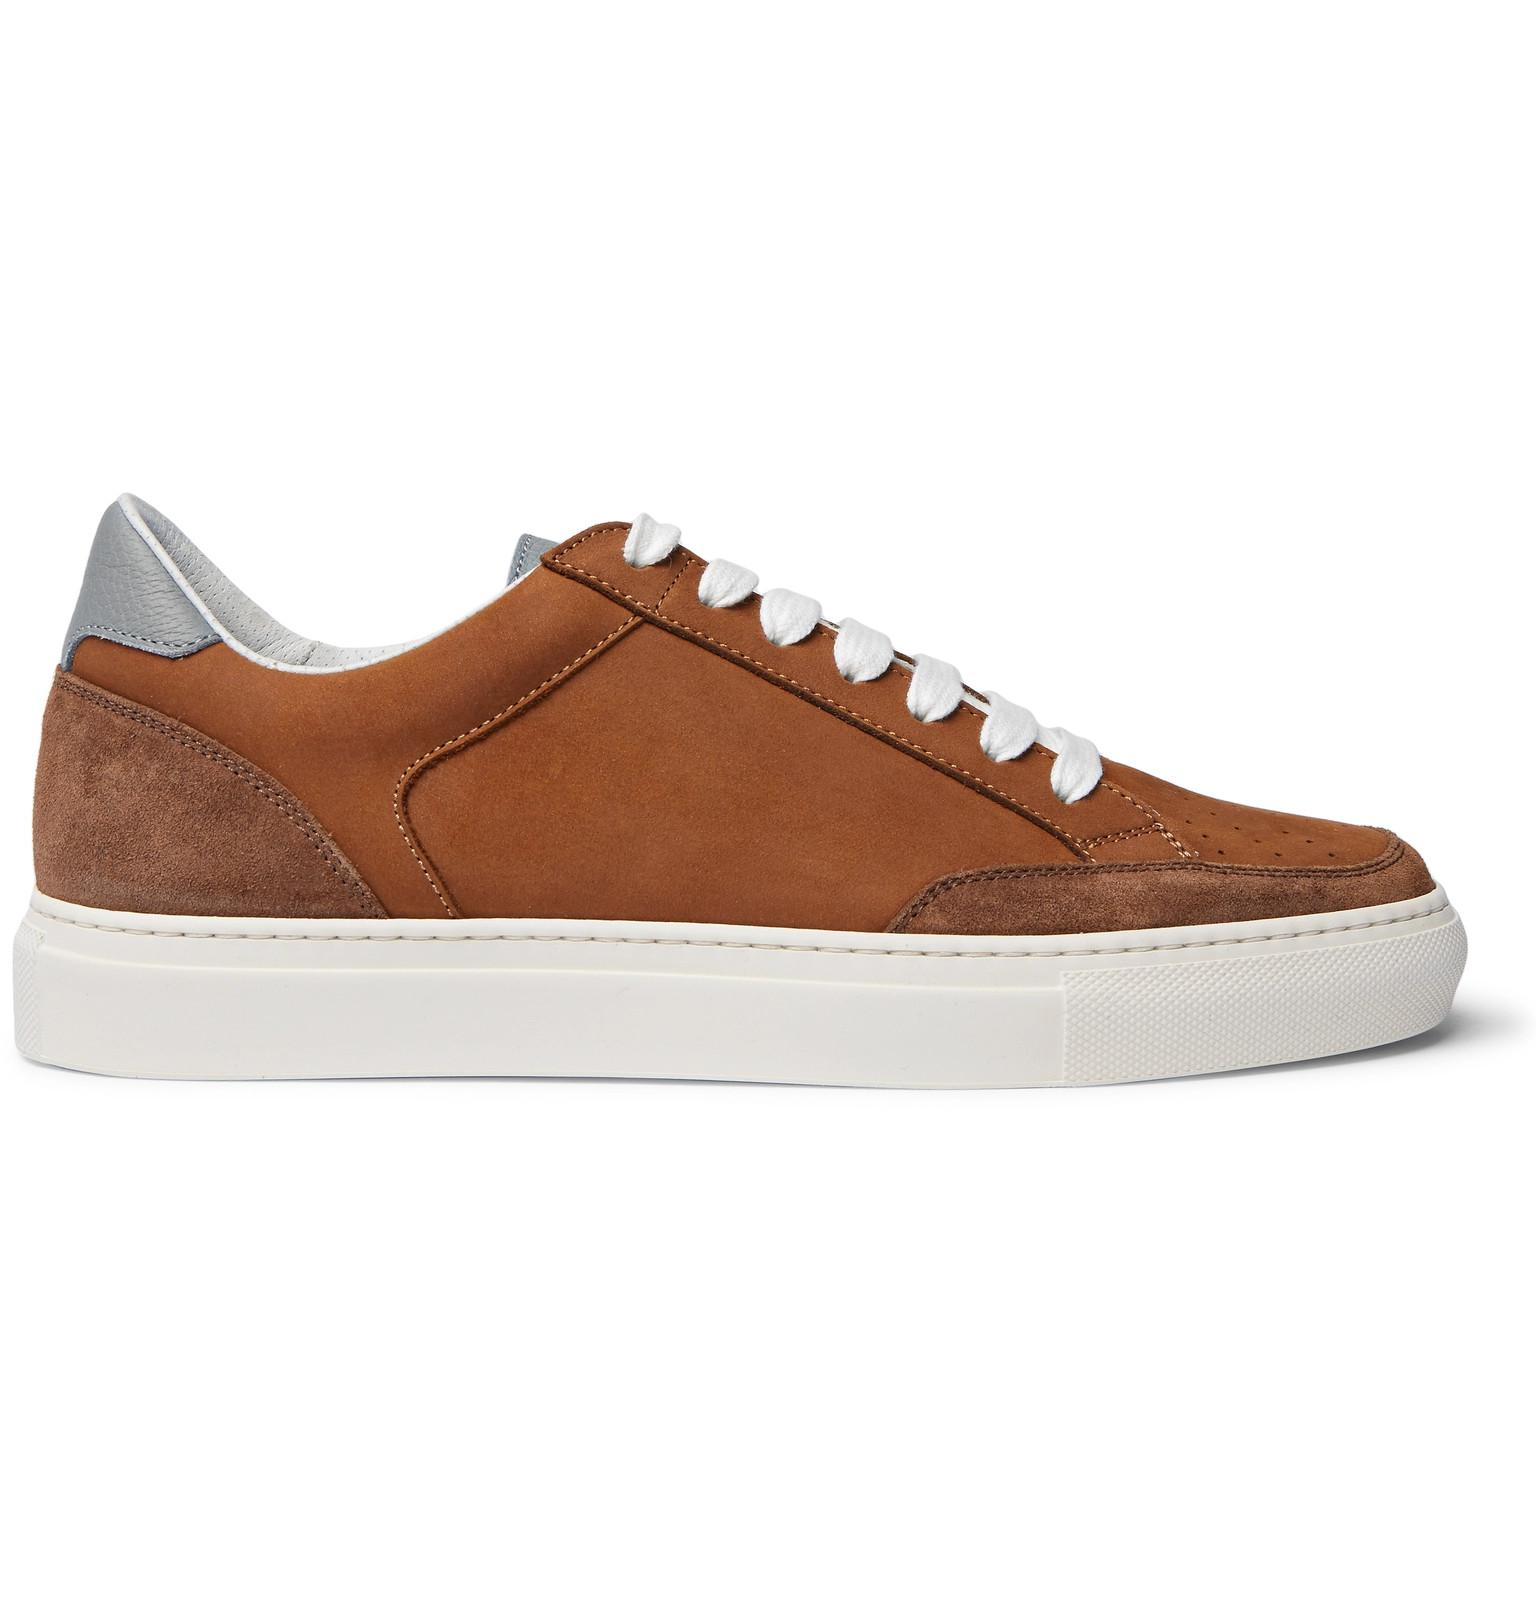 5b07a02b72 brunello-cucinelli-brown-Apollo-Nubuck-Suede-And-Leather-Sneakers.jpeg